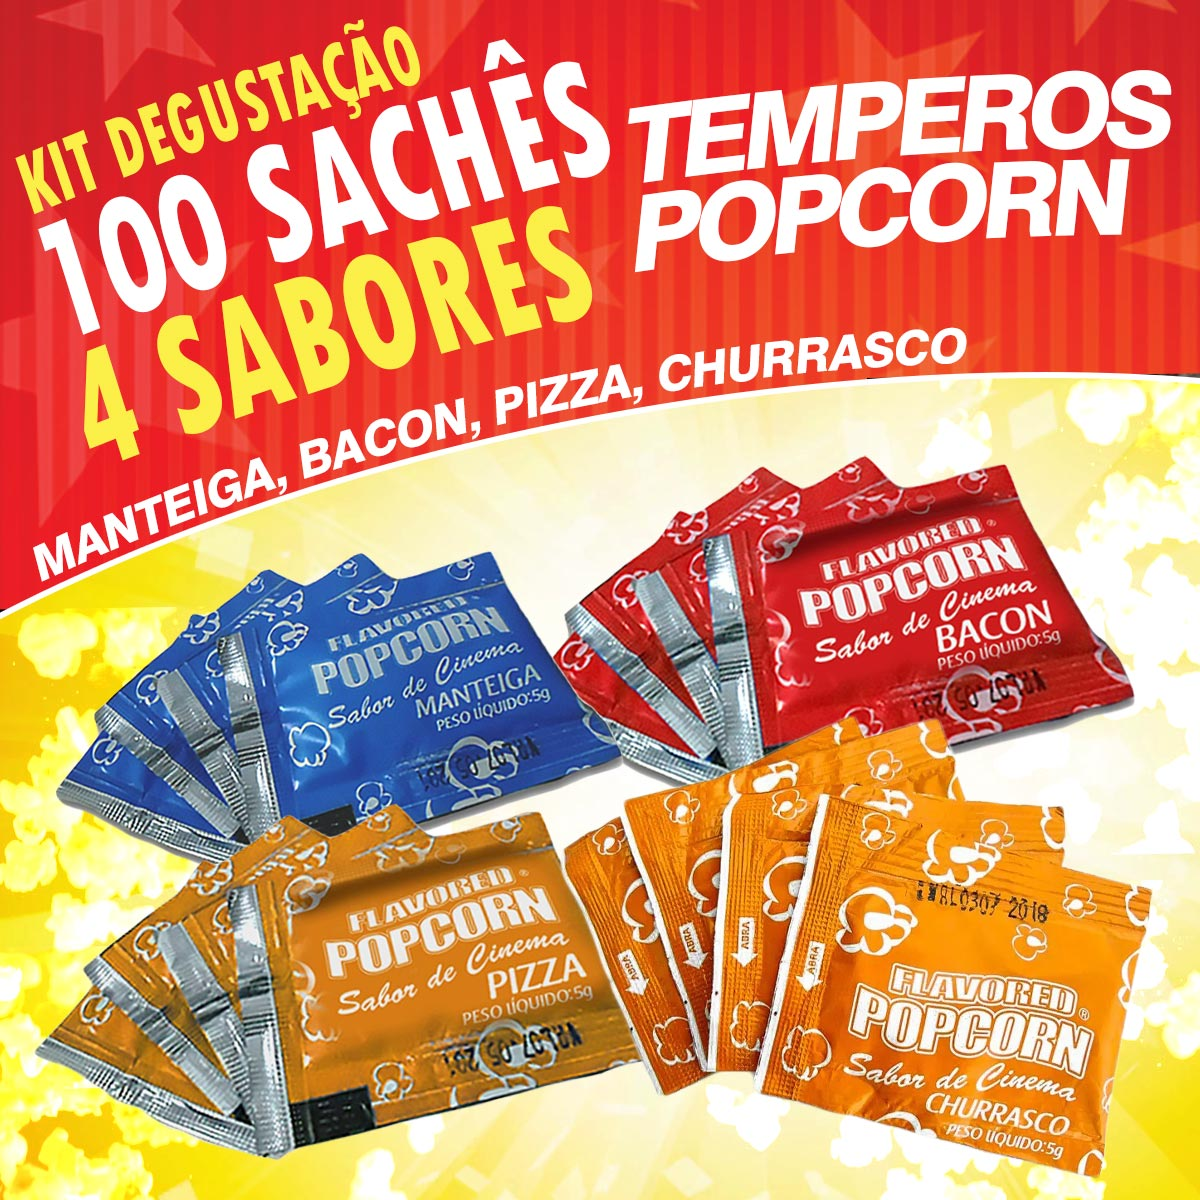 Temperos Popcorn 100 sachês. 25 Manteiga, 25 Churrasco, 25 Pizza e 25 Bacon.